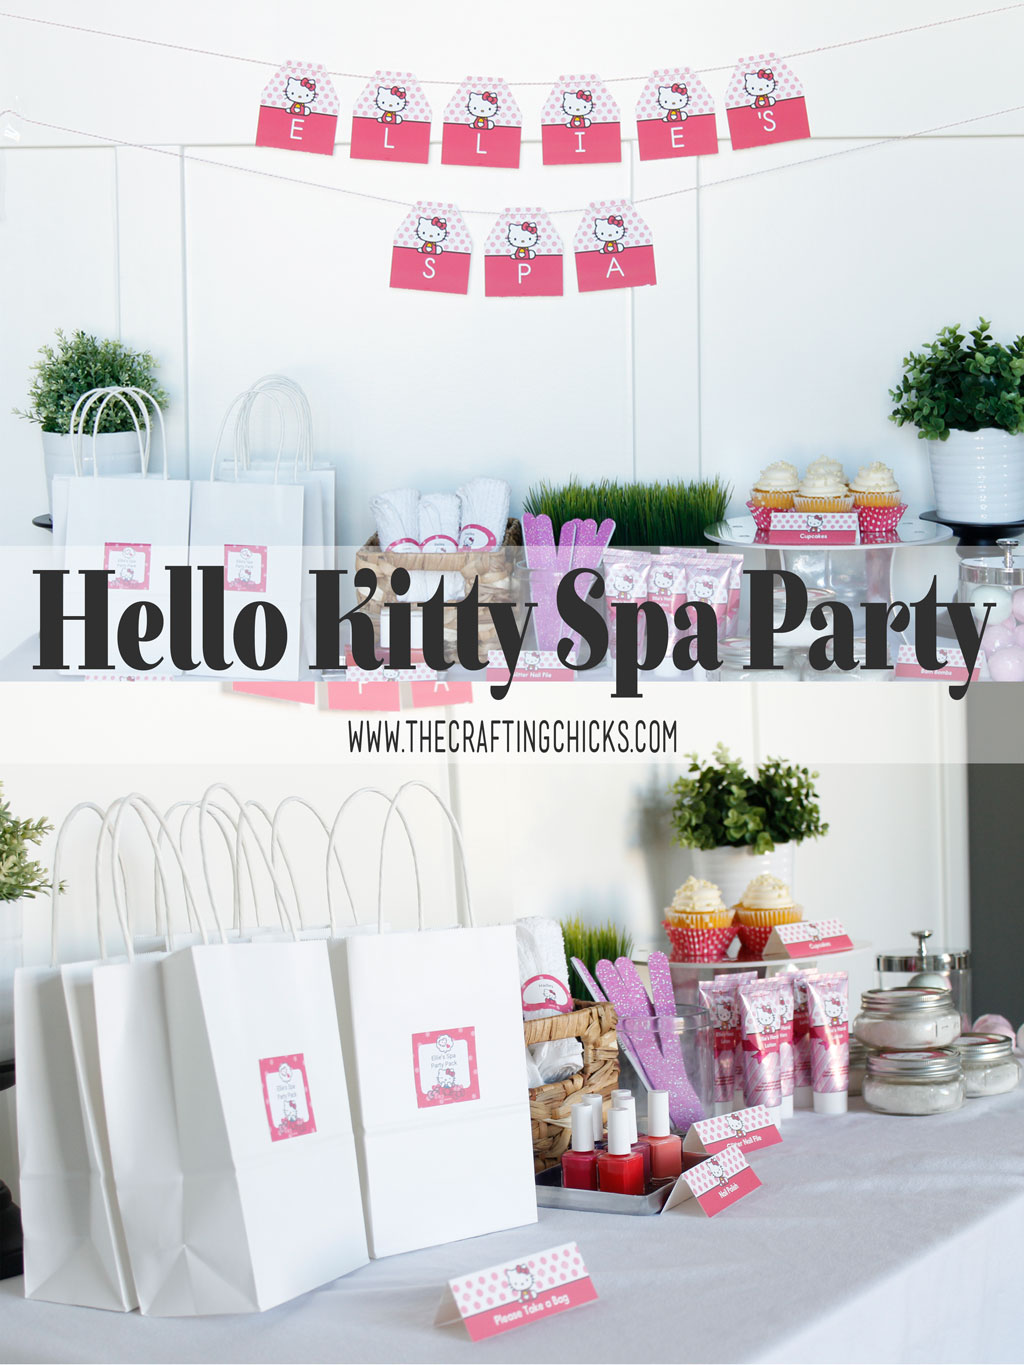 Hello Kitty Spa Party is the perfect way to add a fun flare to a little girls spa party. Adding fun pops of pink this party will be a hit.